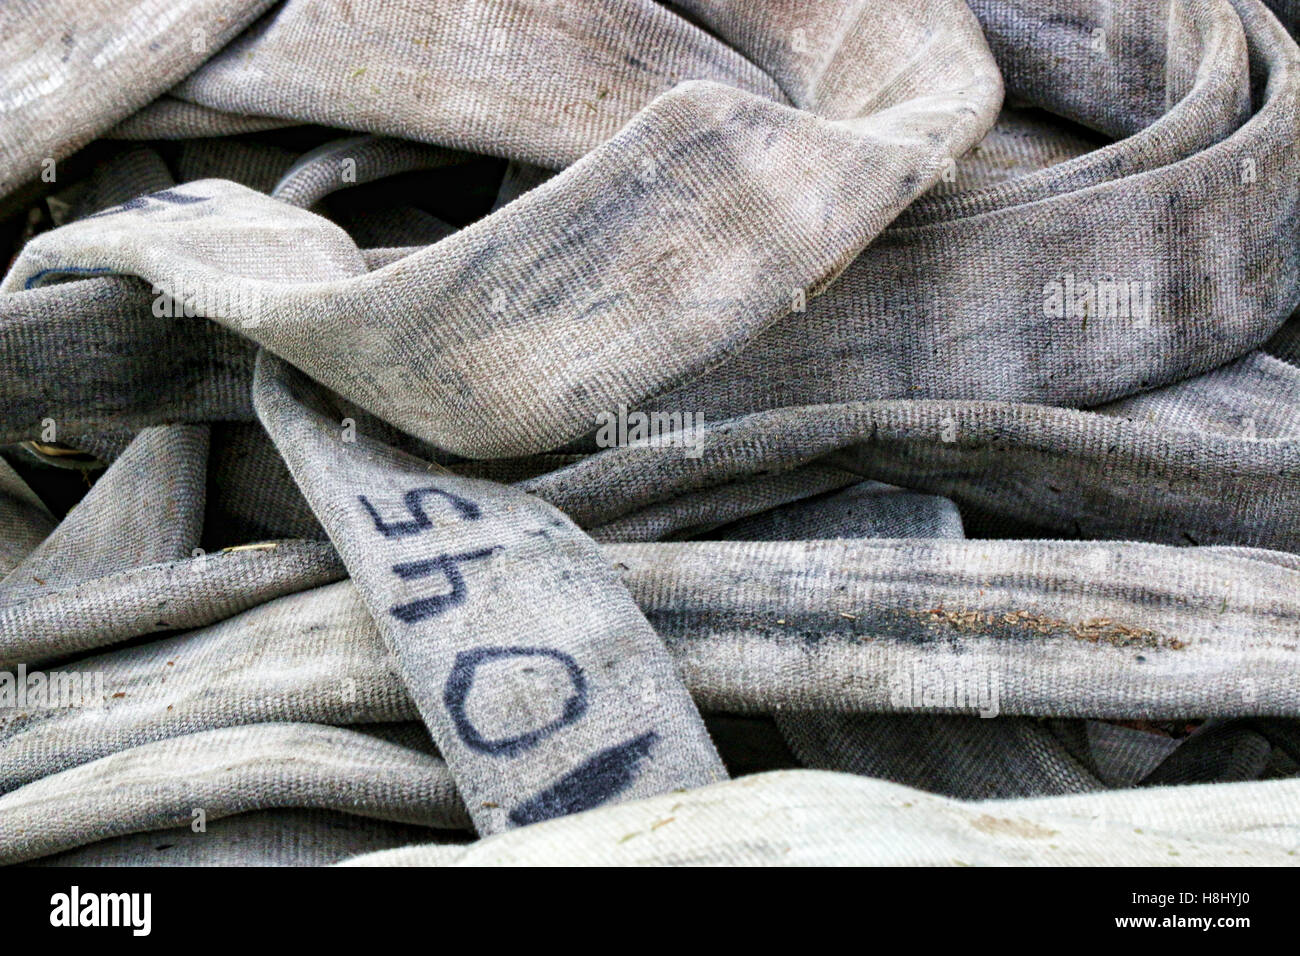 Pile of intertwined Fire Hose - Stock Image